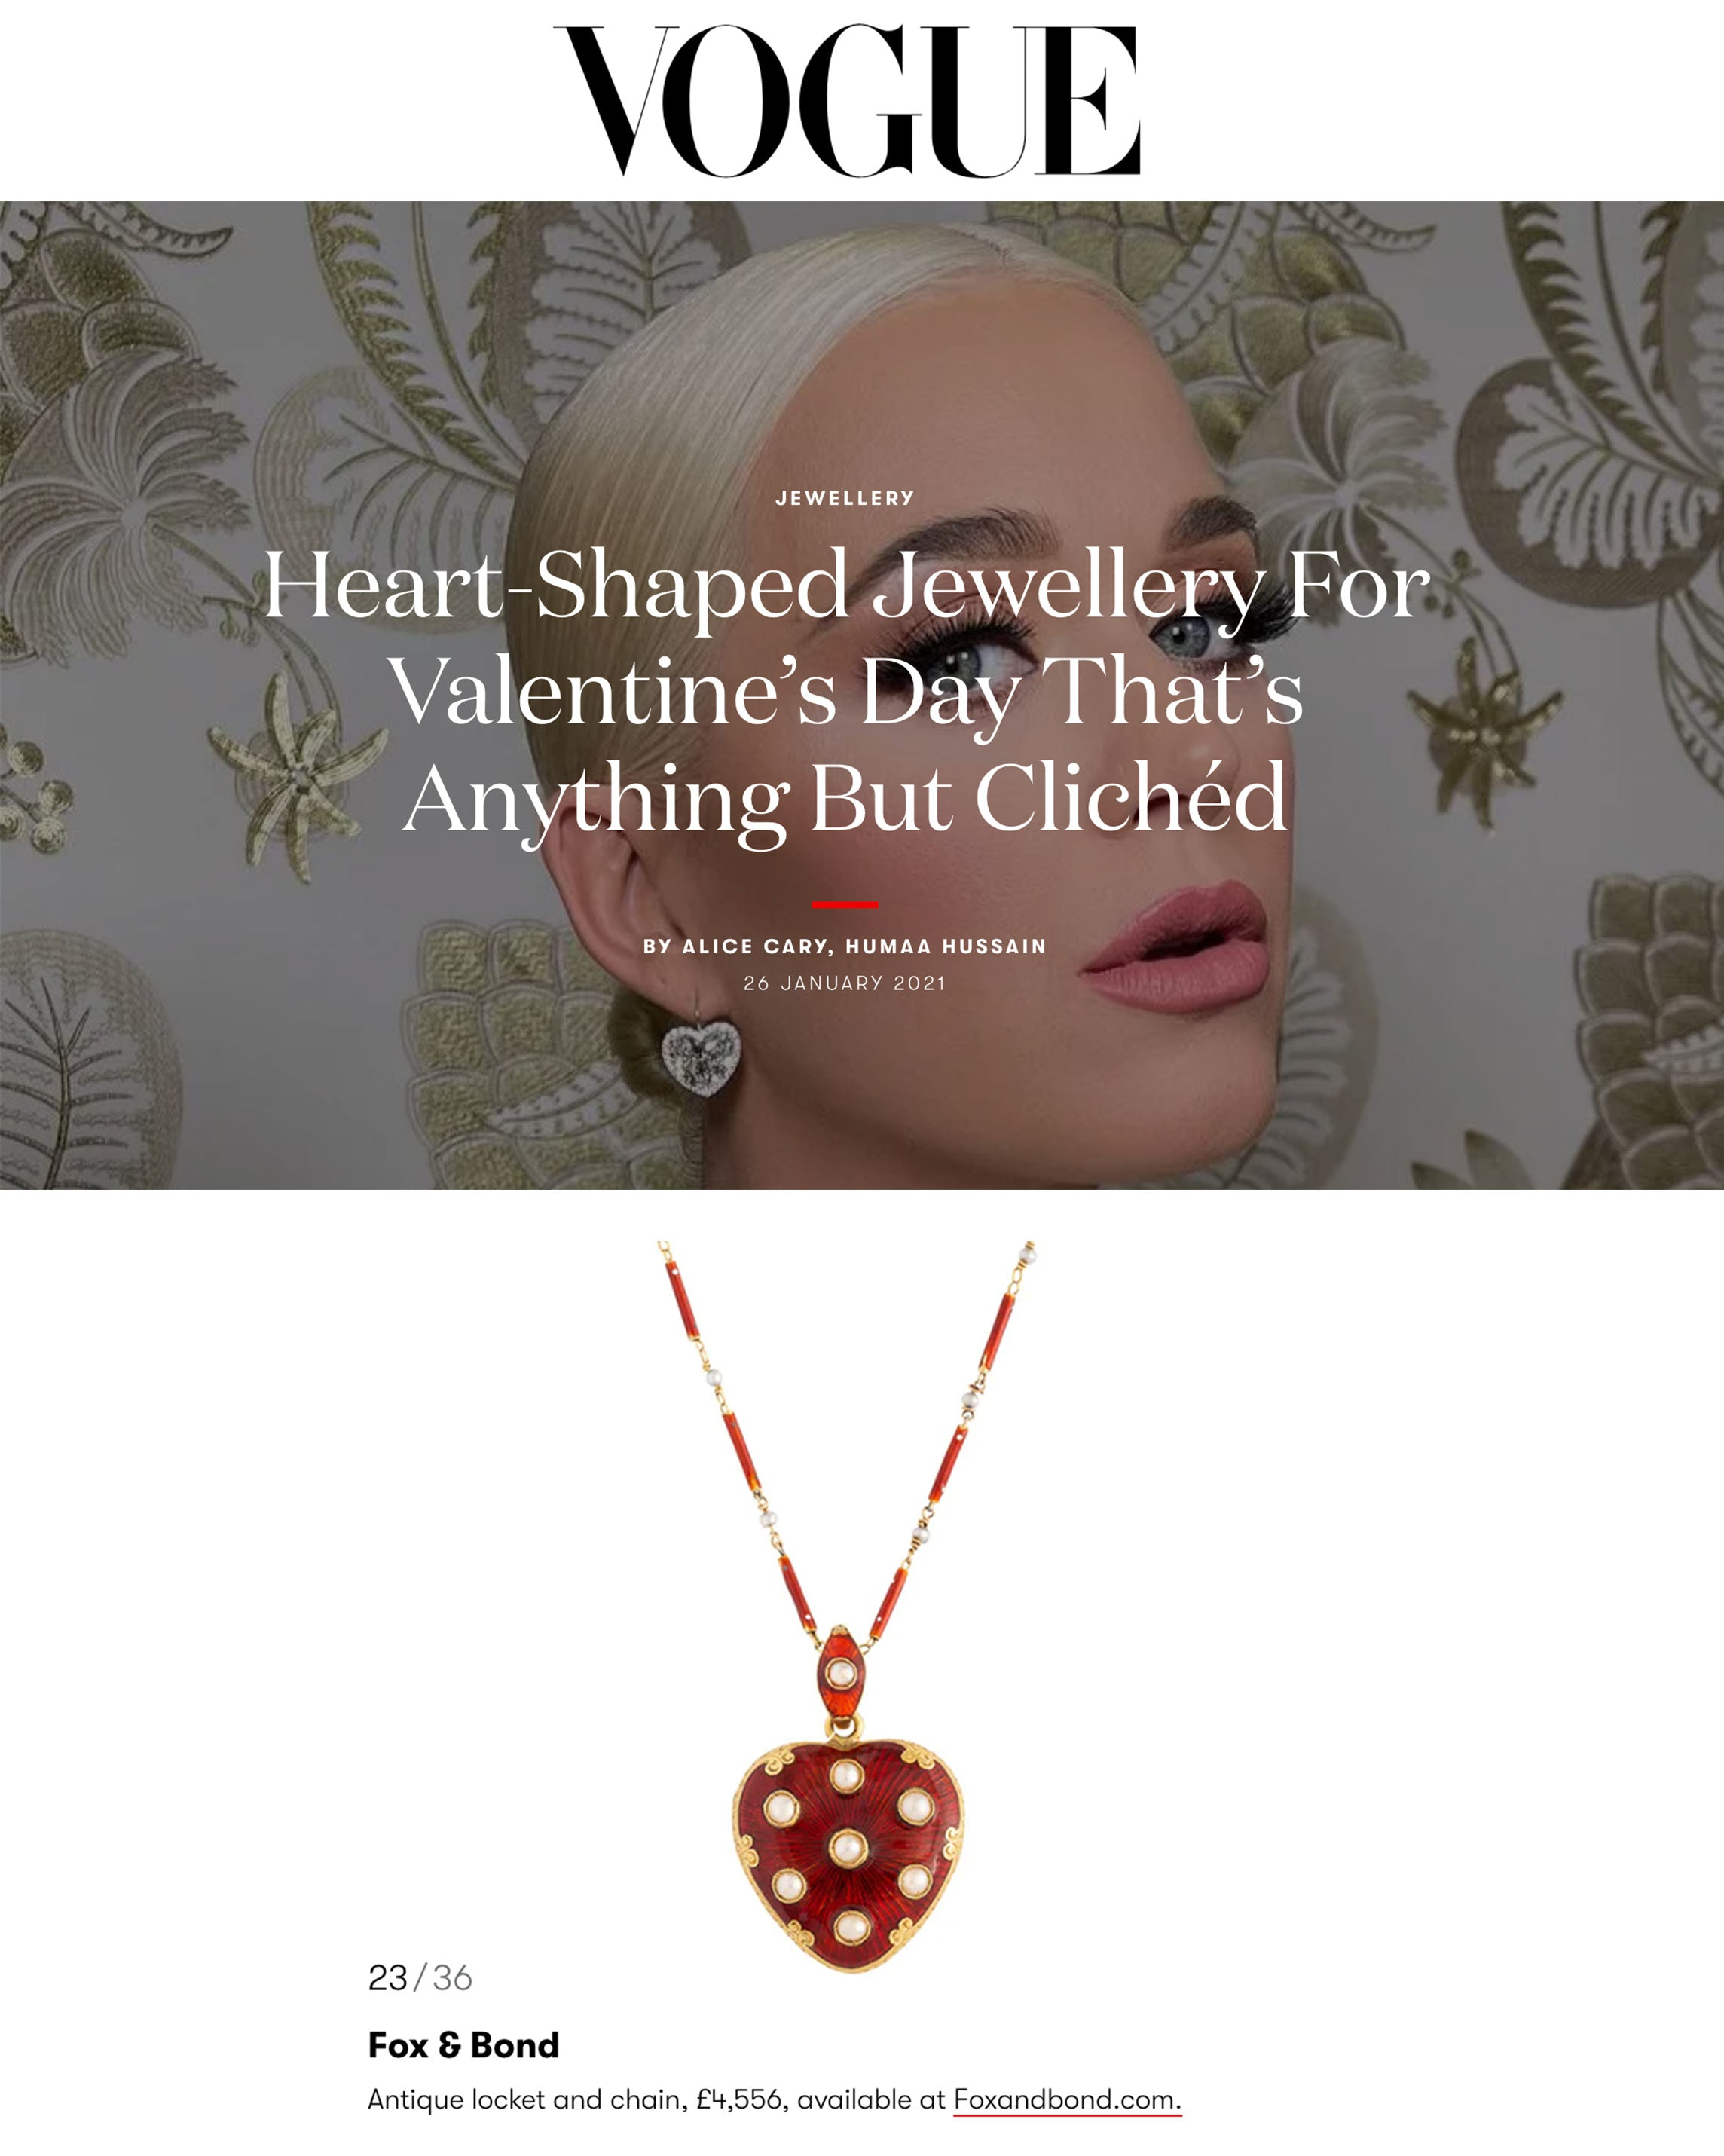 British Vogue: Heart-Shaped Jewellery For Valentine's Day That's Anything But Clichéd